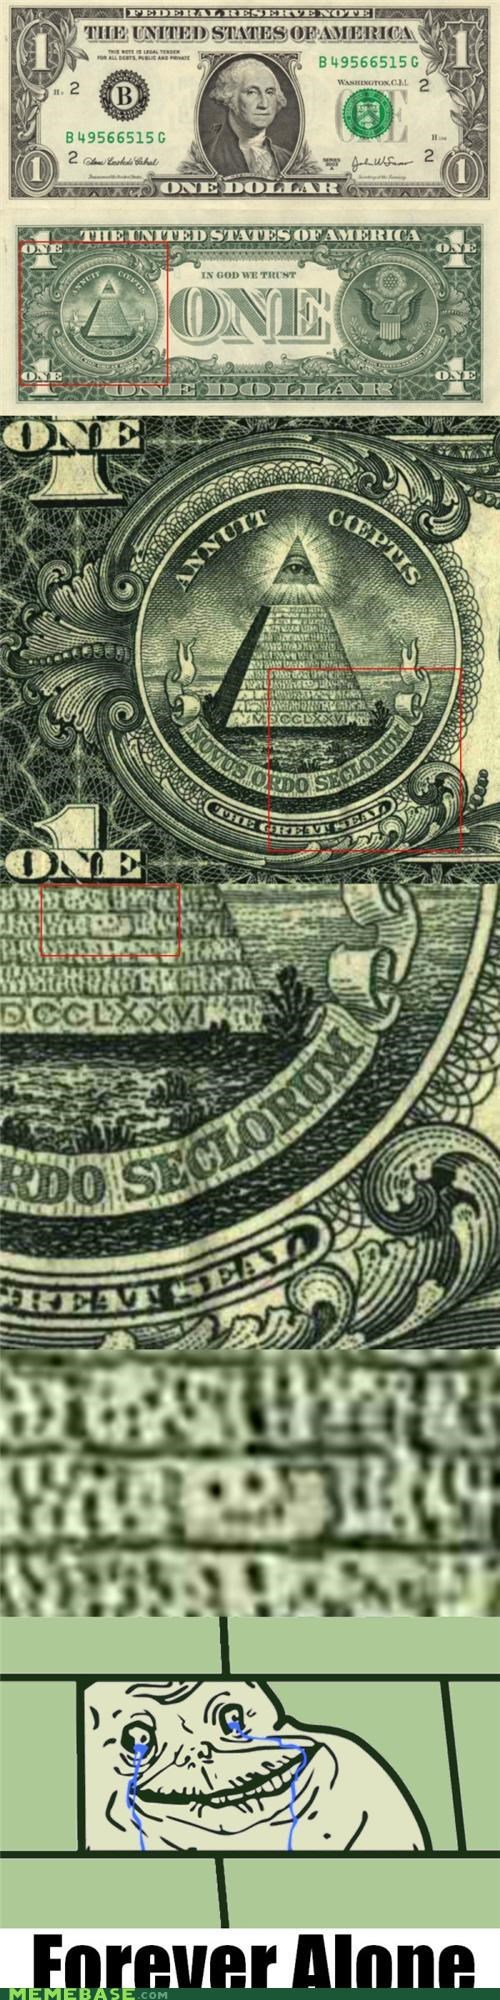 dollar bill,forever alone,freemasons,hiding in lain site,pyramid,secrets